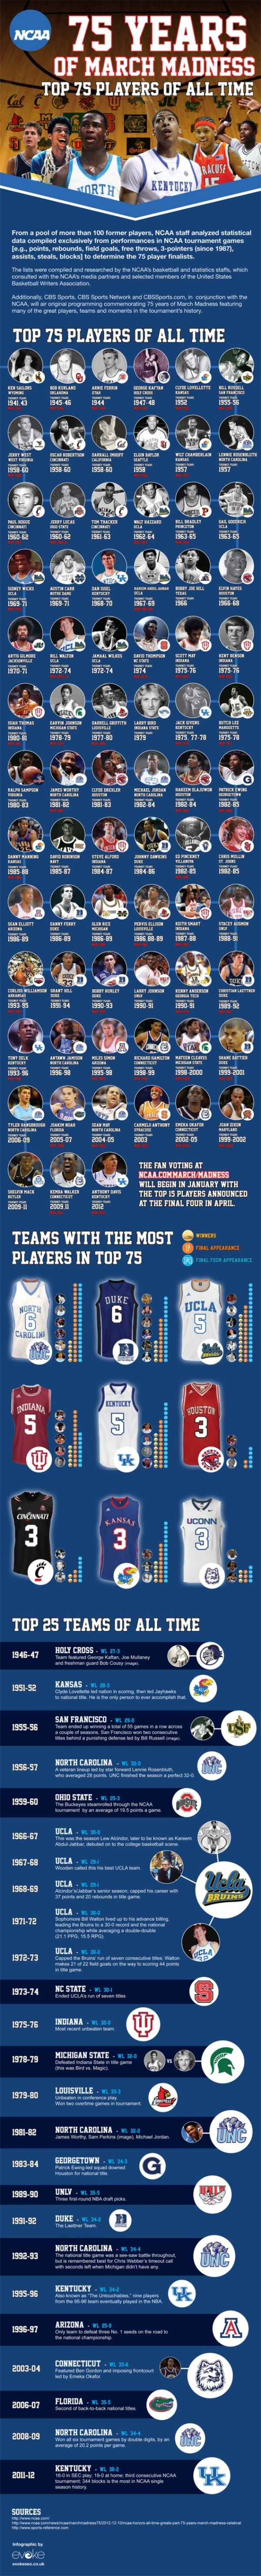 NCAA 75 Years of March Madness Infographic - The Top 75 Basketball Players of All Time!